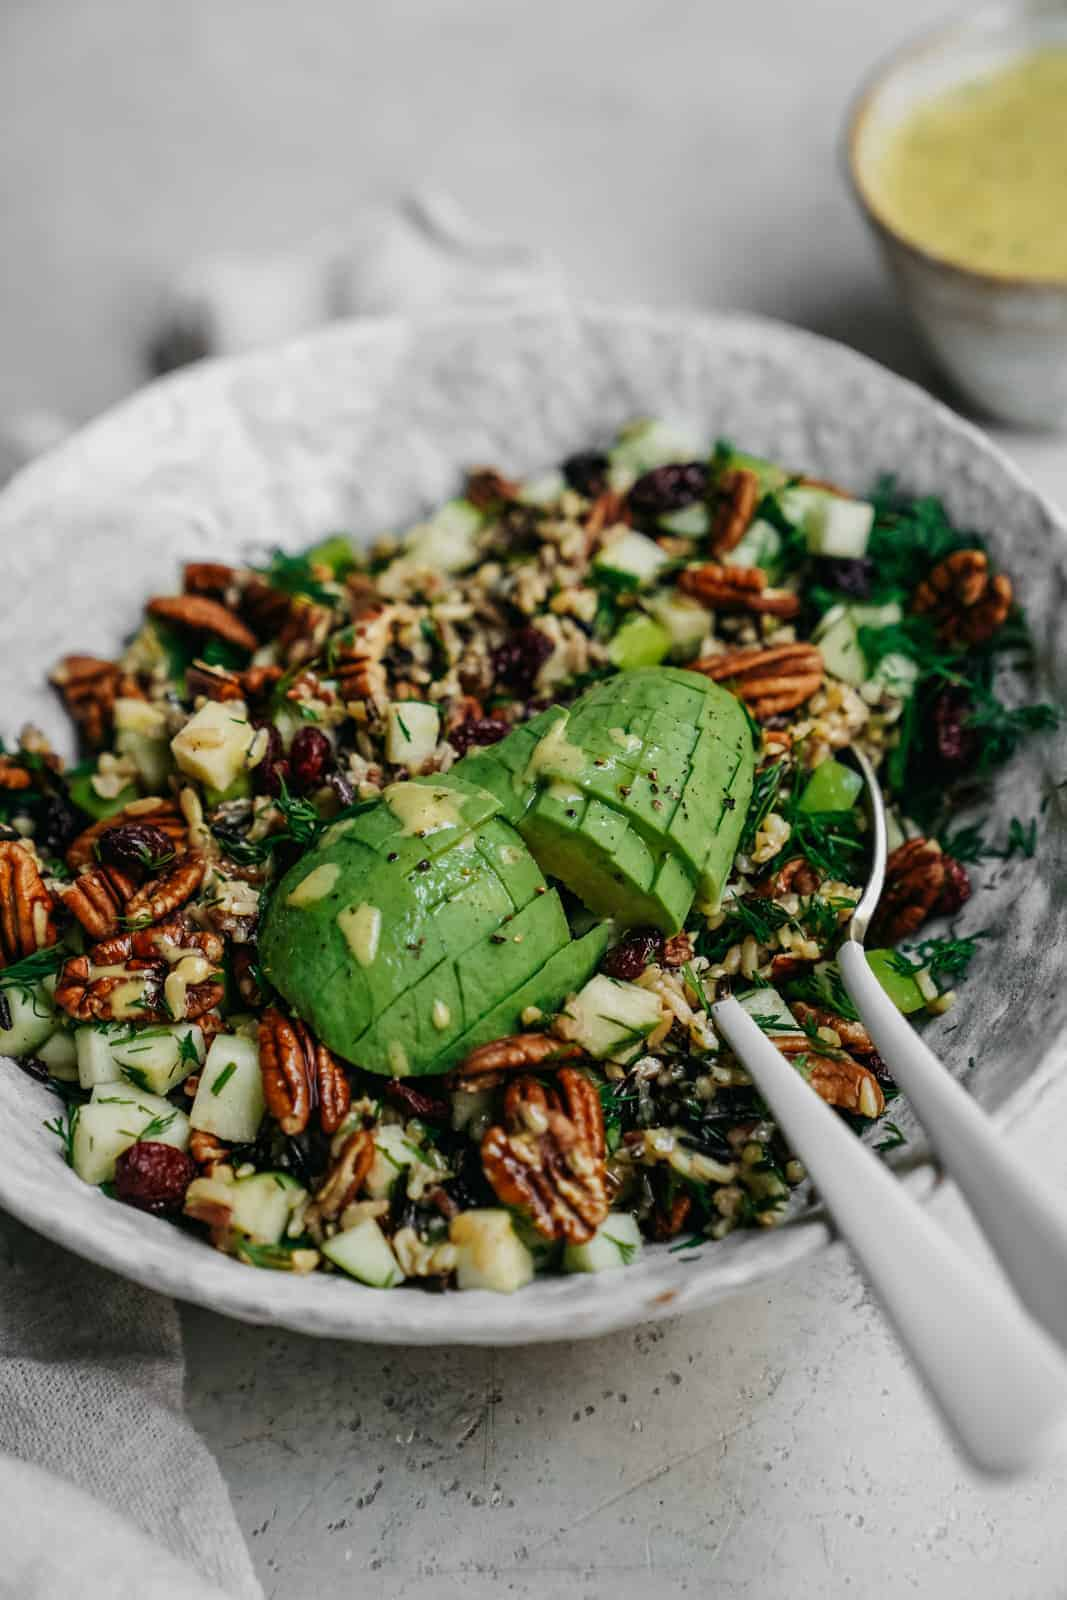 Easy Vegan Simple Wild Rice Salad sitting on counter with serving spoons in the dish and deliciously ripe avocado. A perfect salad for high protein vegan meal prep.